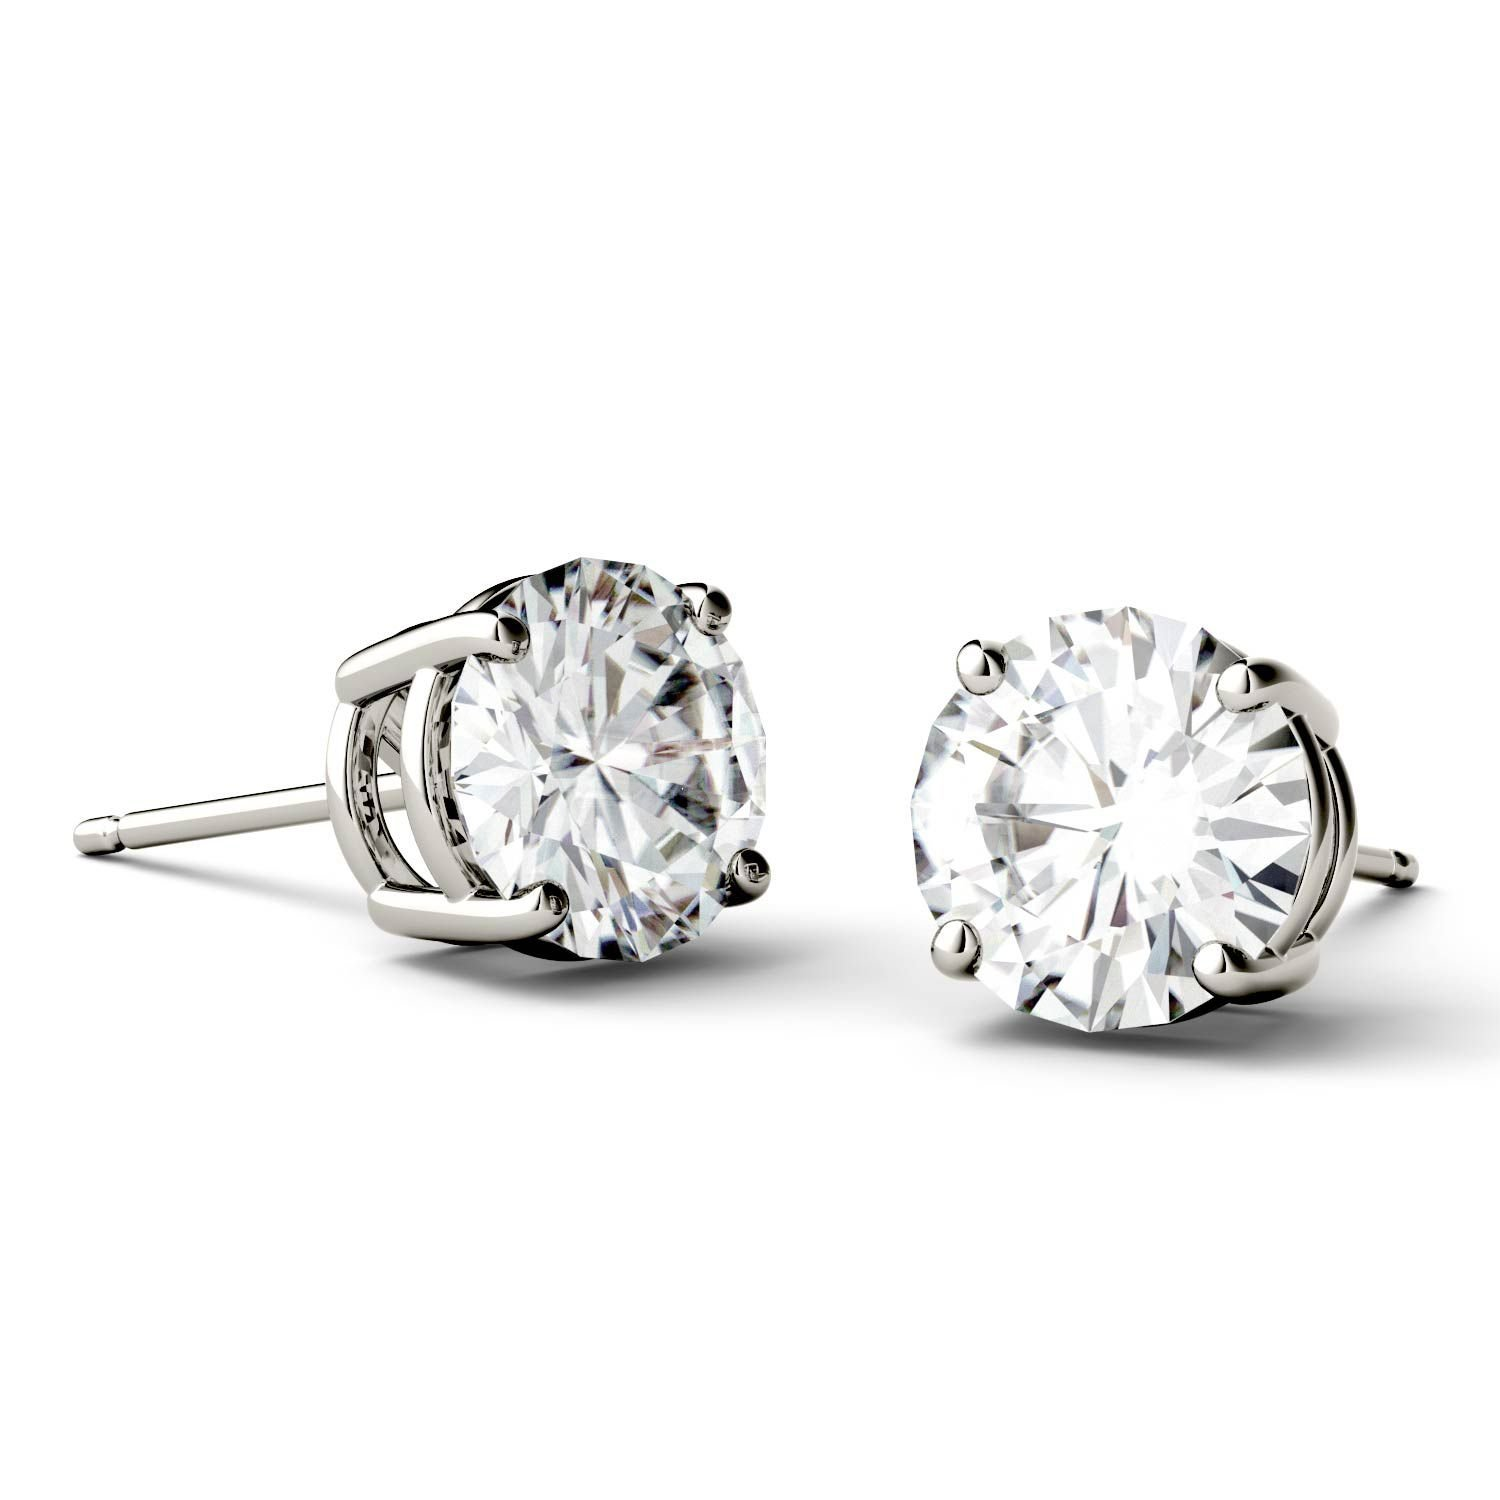 quality suppliers stud from king round silver china pin stone buy trendy cheap white ct sterling gem earrings moissanite for directly women created